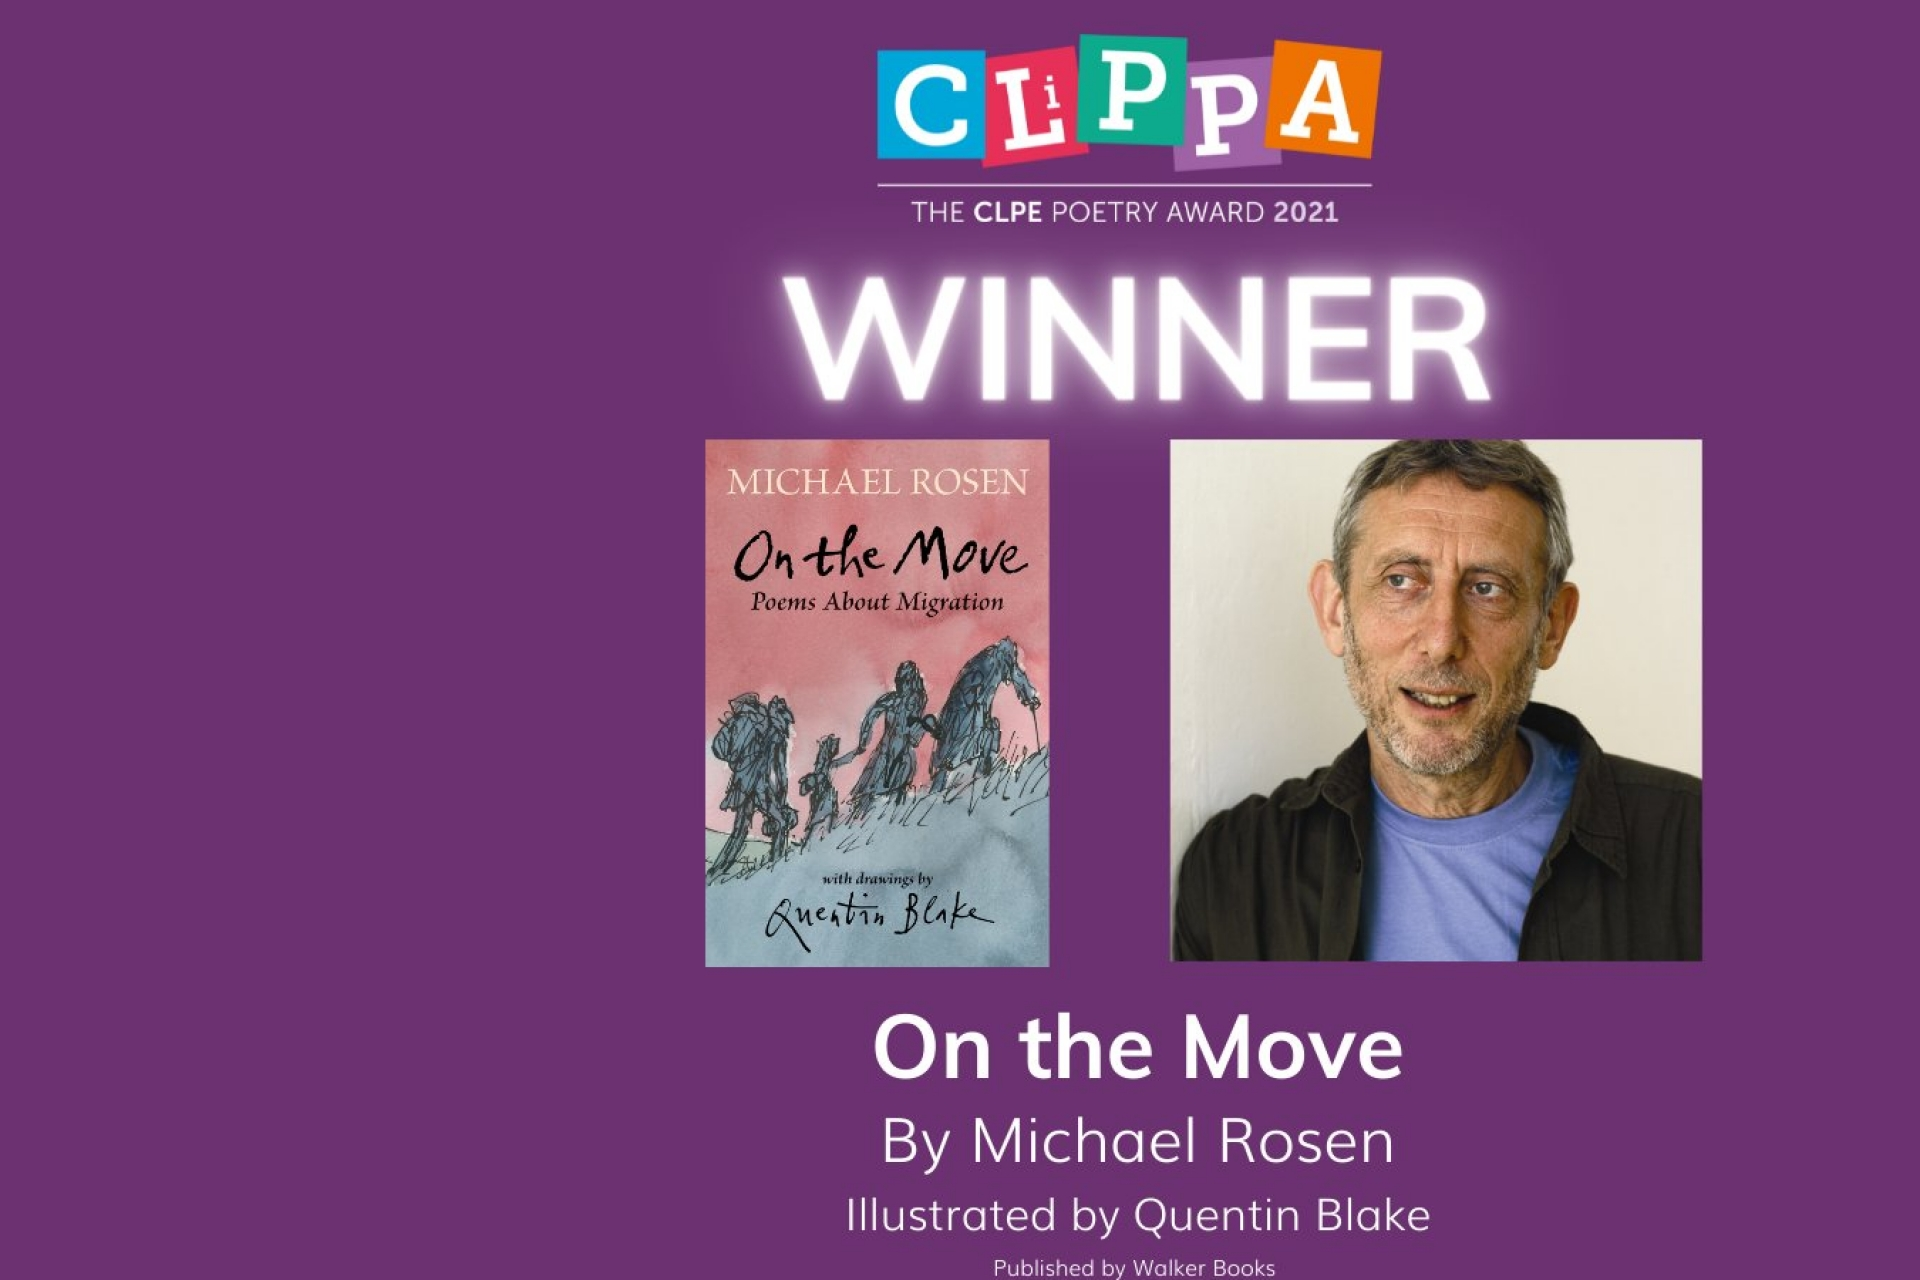 Michael Rosen wins the CLiPPA Children's Poetry Award with On The Move, his collection about migration